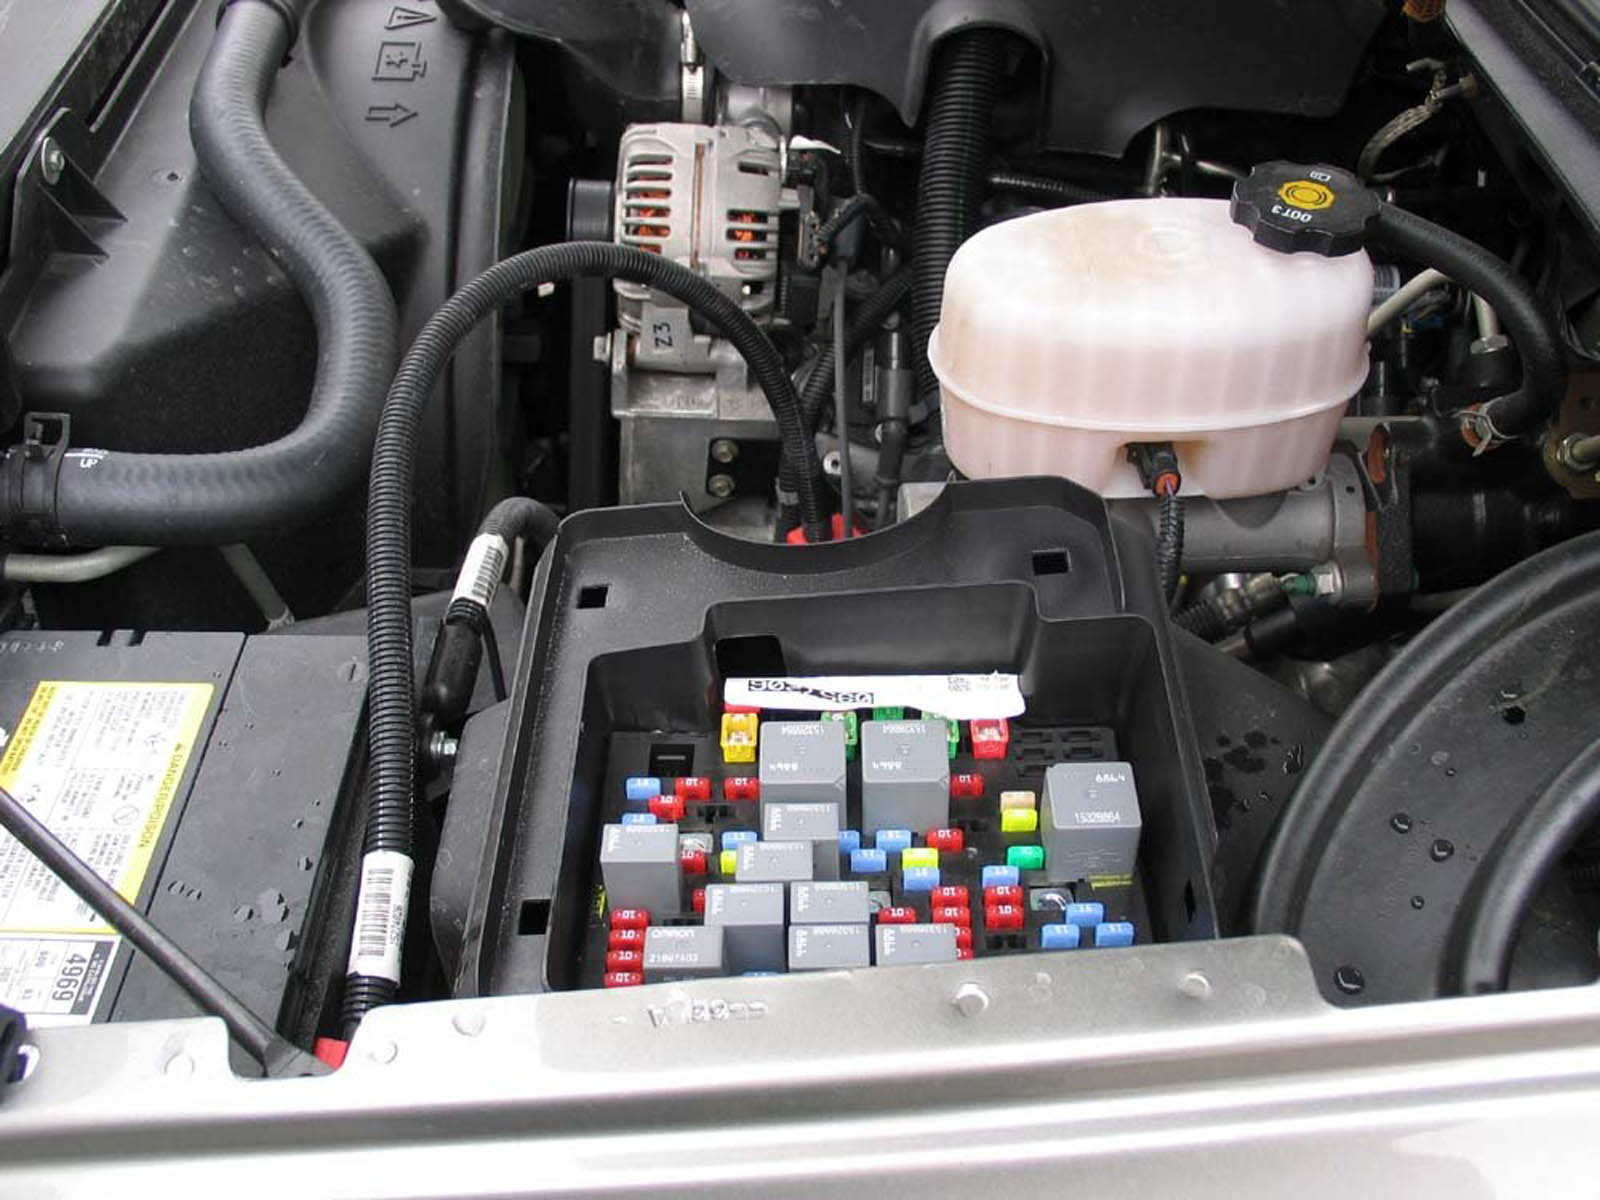 2004 chevy silverado fuse box diagram 2004 image chevrolet silverado gmt800 1999 2006 fuse box diagram chevroletforum on 2004 chevy silverado fuse box diagram